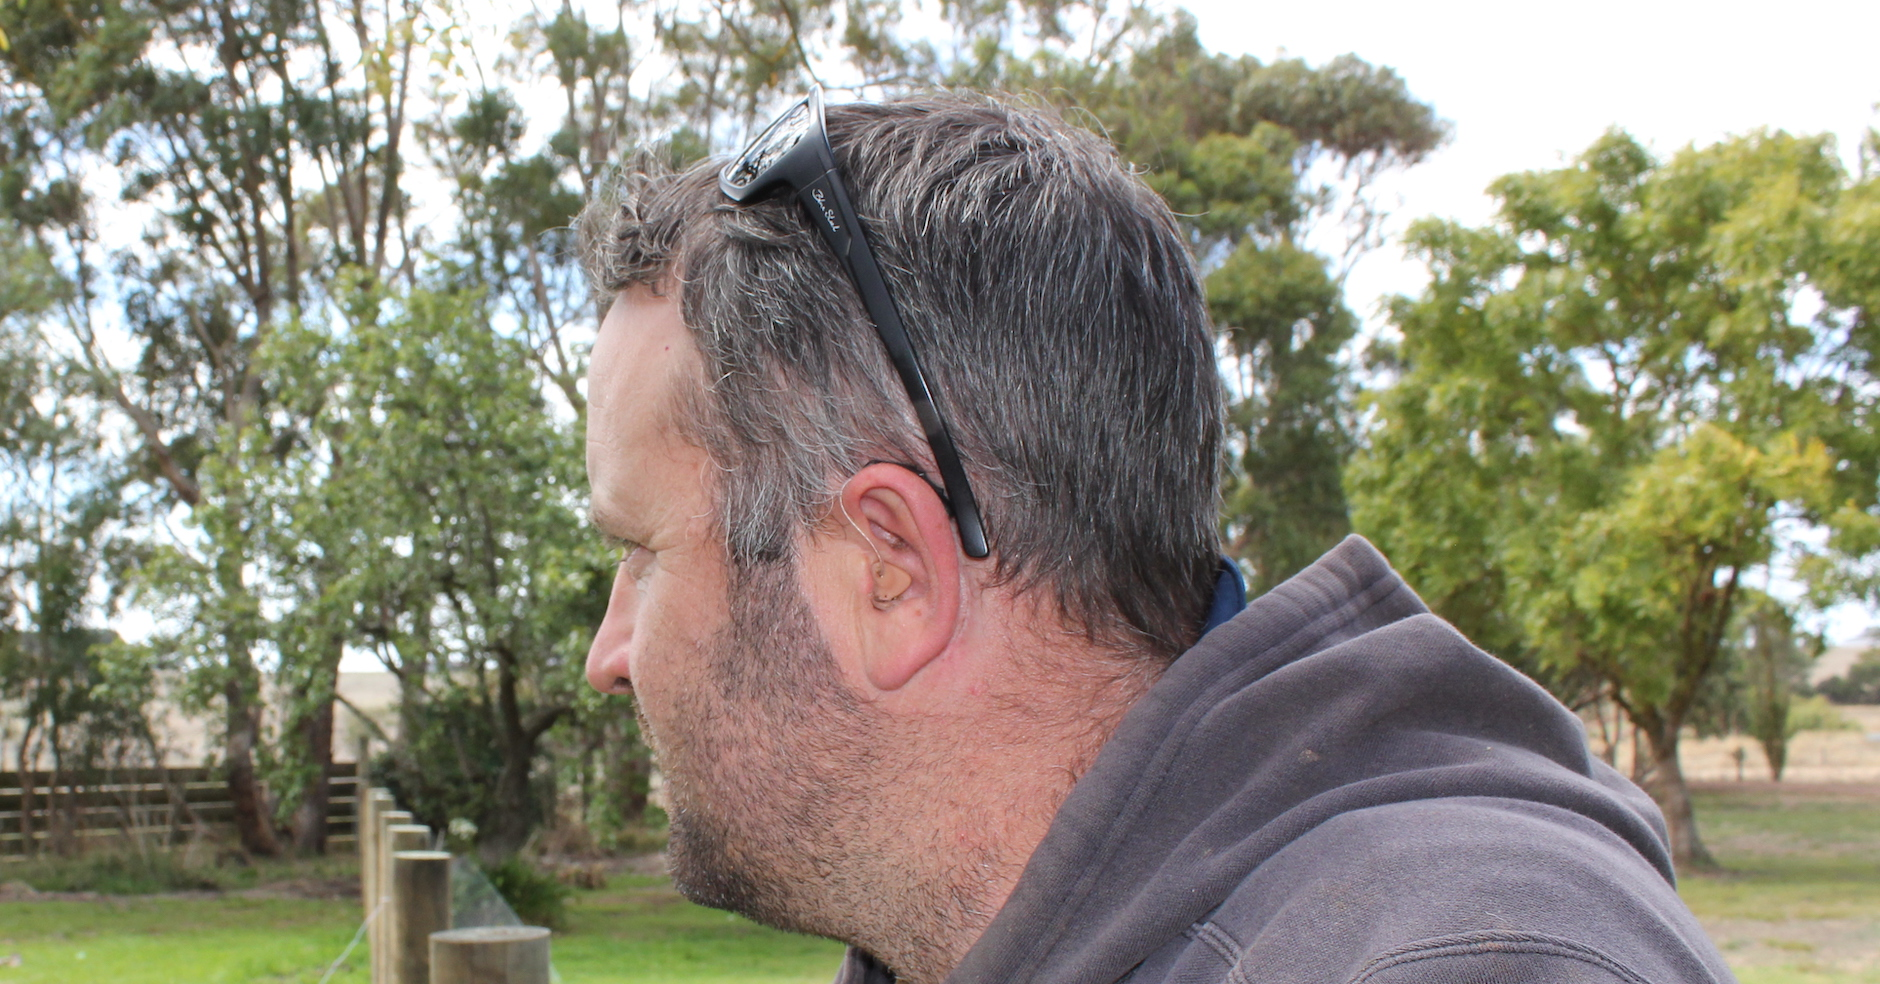 Jay Wynd's hearing aid is barely noticeable.